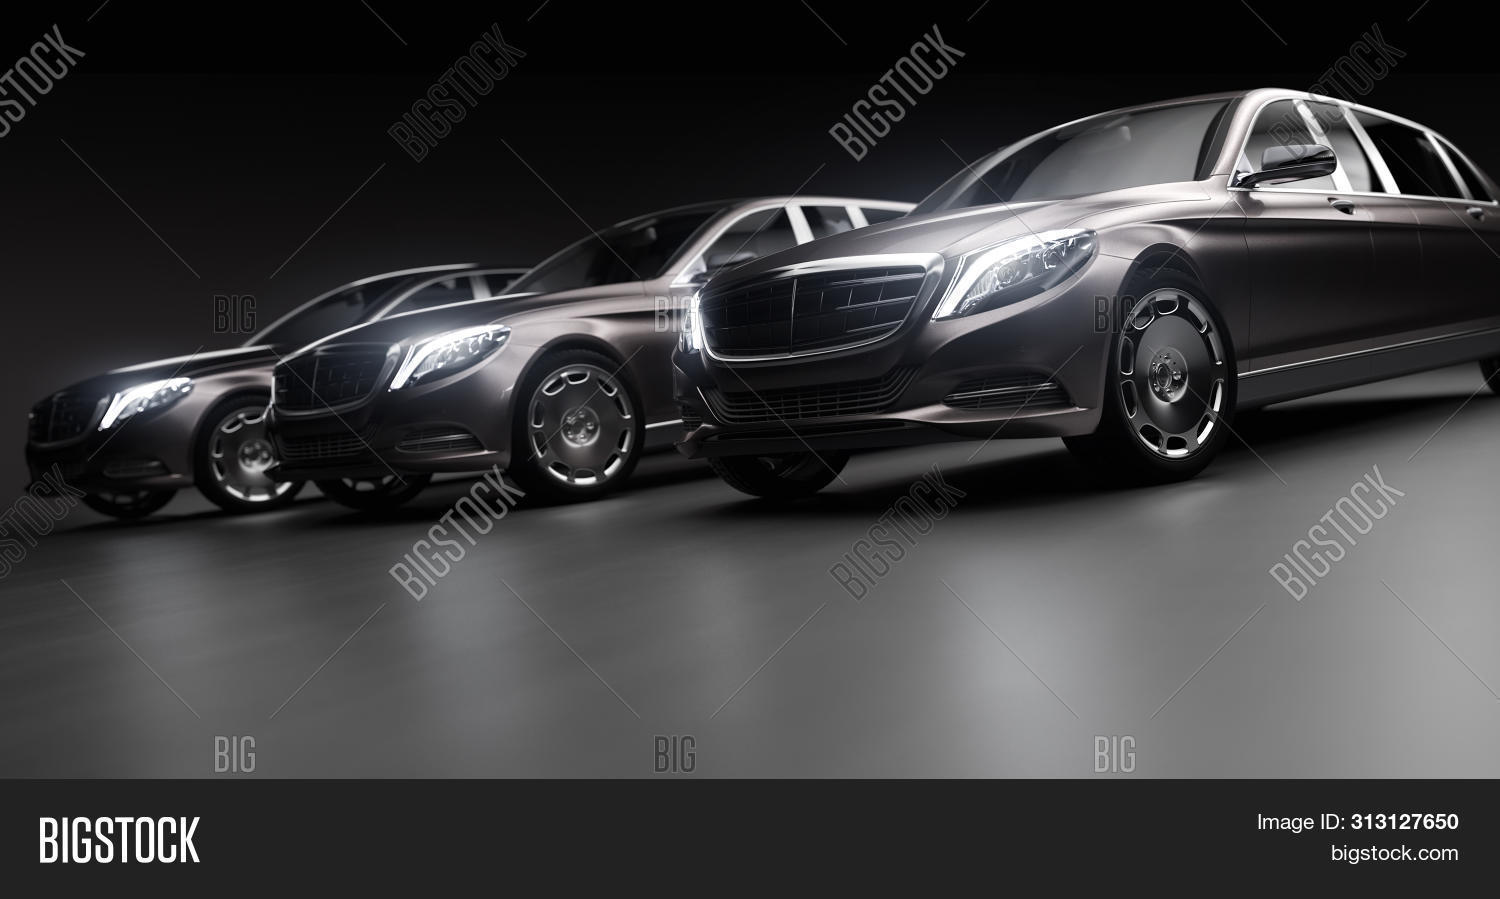 3d illustration,auto,automobile,automotive,black,business,buy,car,cars,chrome,clean,commercial,contemporary,dark,design,detailing,drive,elegant,exclusive,expensive,fleet,freight,garage,generic,lamp,lease,leasing,light,limo,limousine,logistic,luxurious,luxury,many,modern,new,performance,rent,rent a car,service,shiny,sleek,sport,studio,style,transport,transportation,travel,vehicle,vip